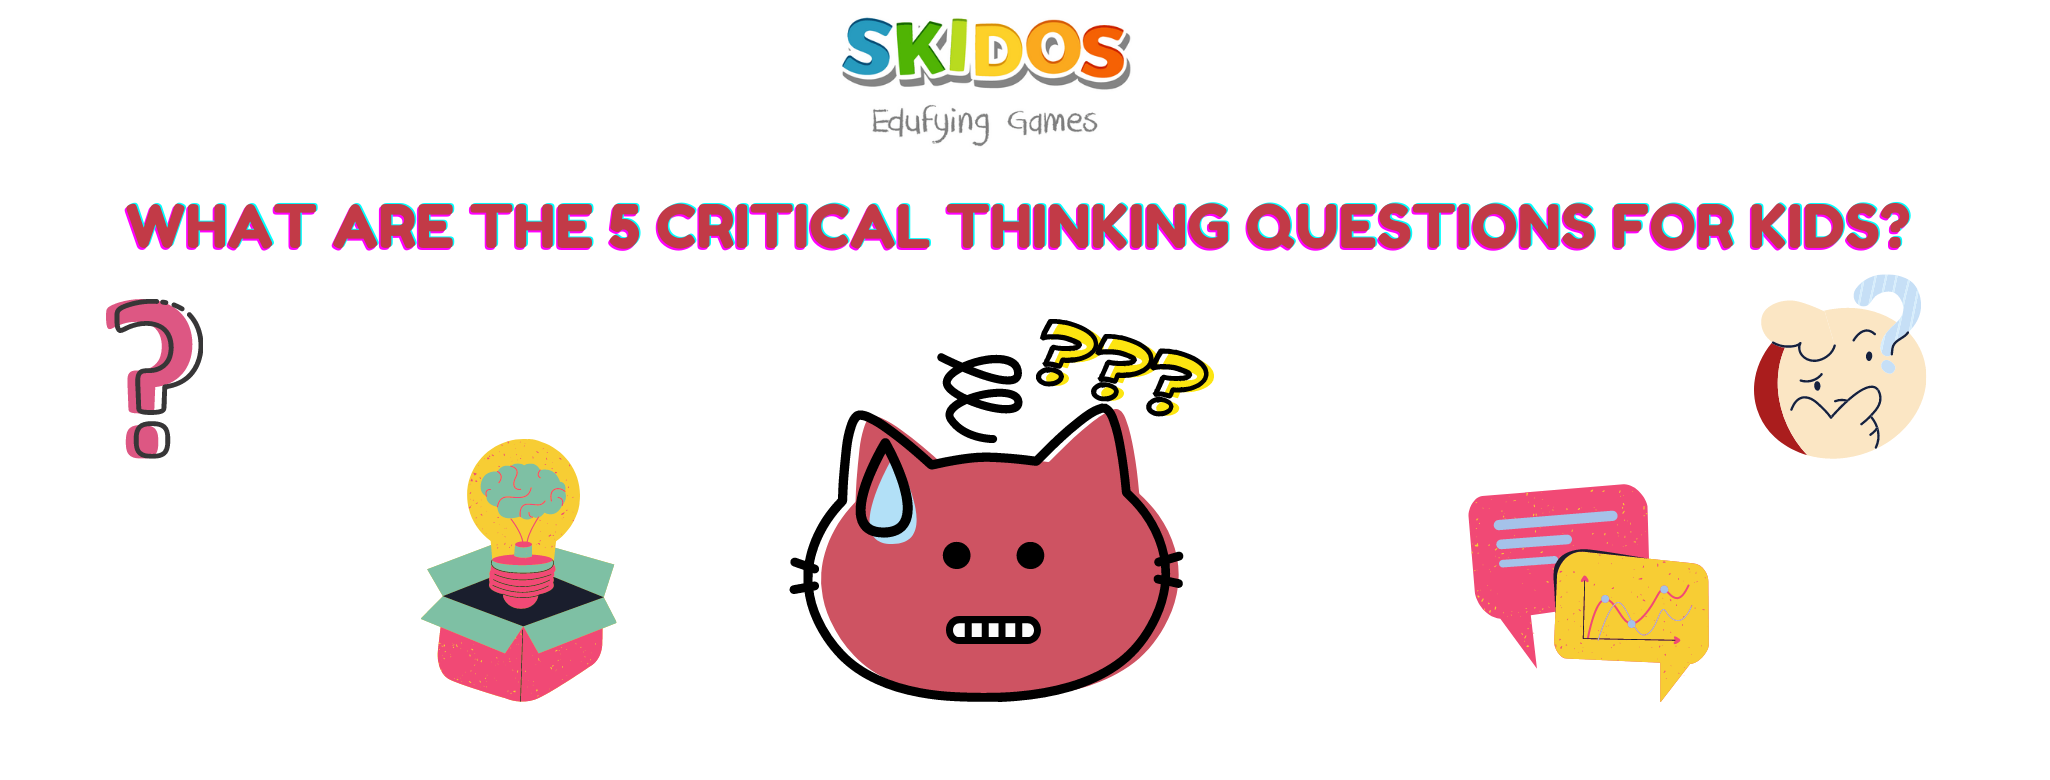 What are the 5 critical thinking questions for kids, students